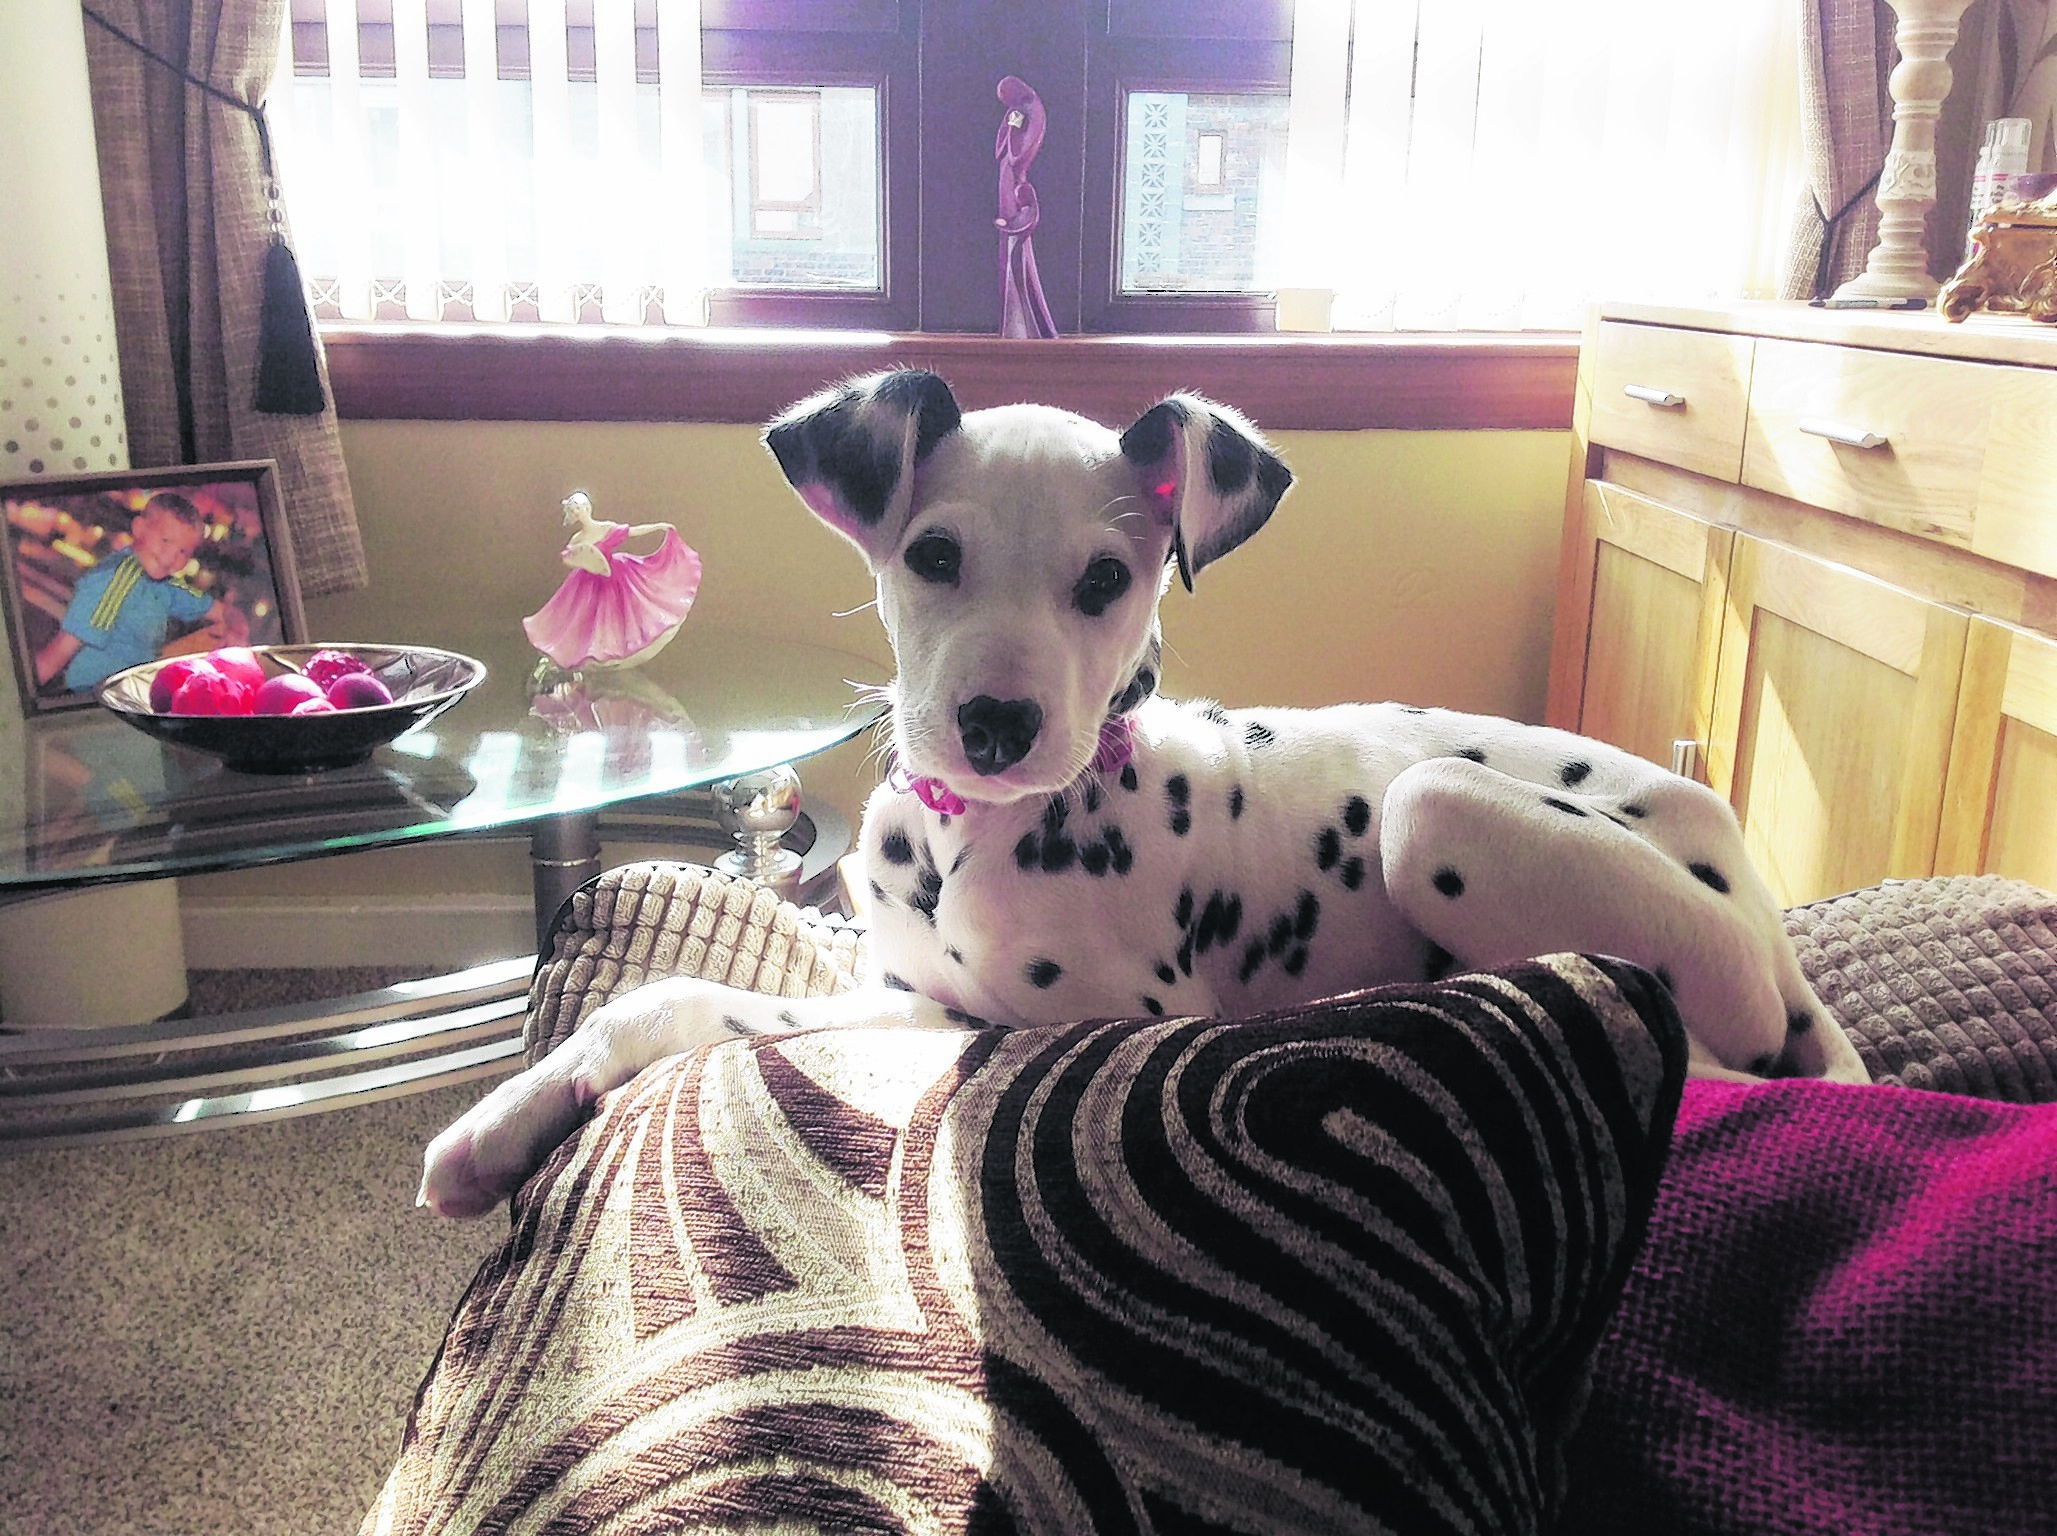 This is Rumbo, a four month old Dalmatian who lives in Portsoy with Steven Jamieson, Wendy Cormack and Jocky Jamieson.   Rumbo is our winner this week.